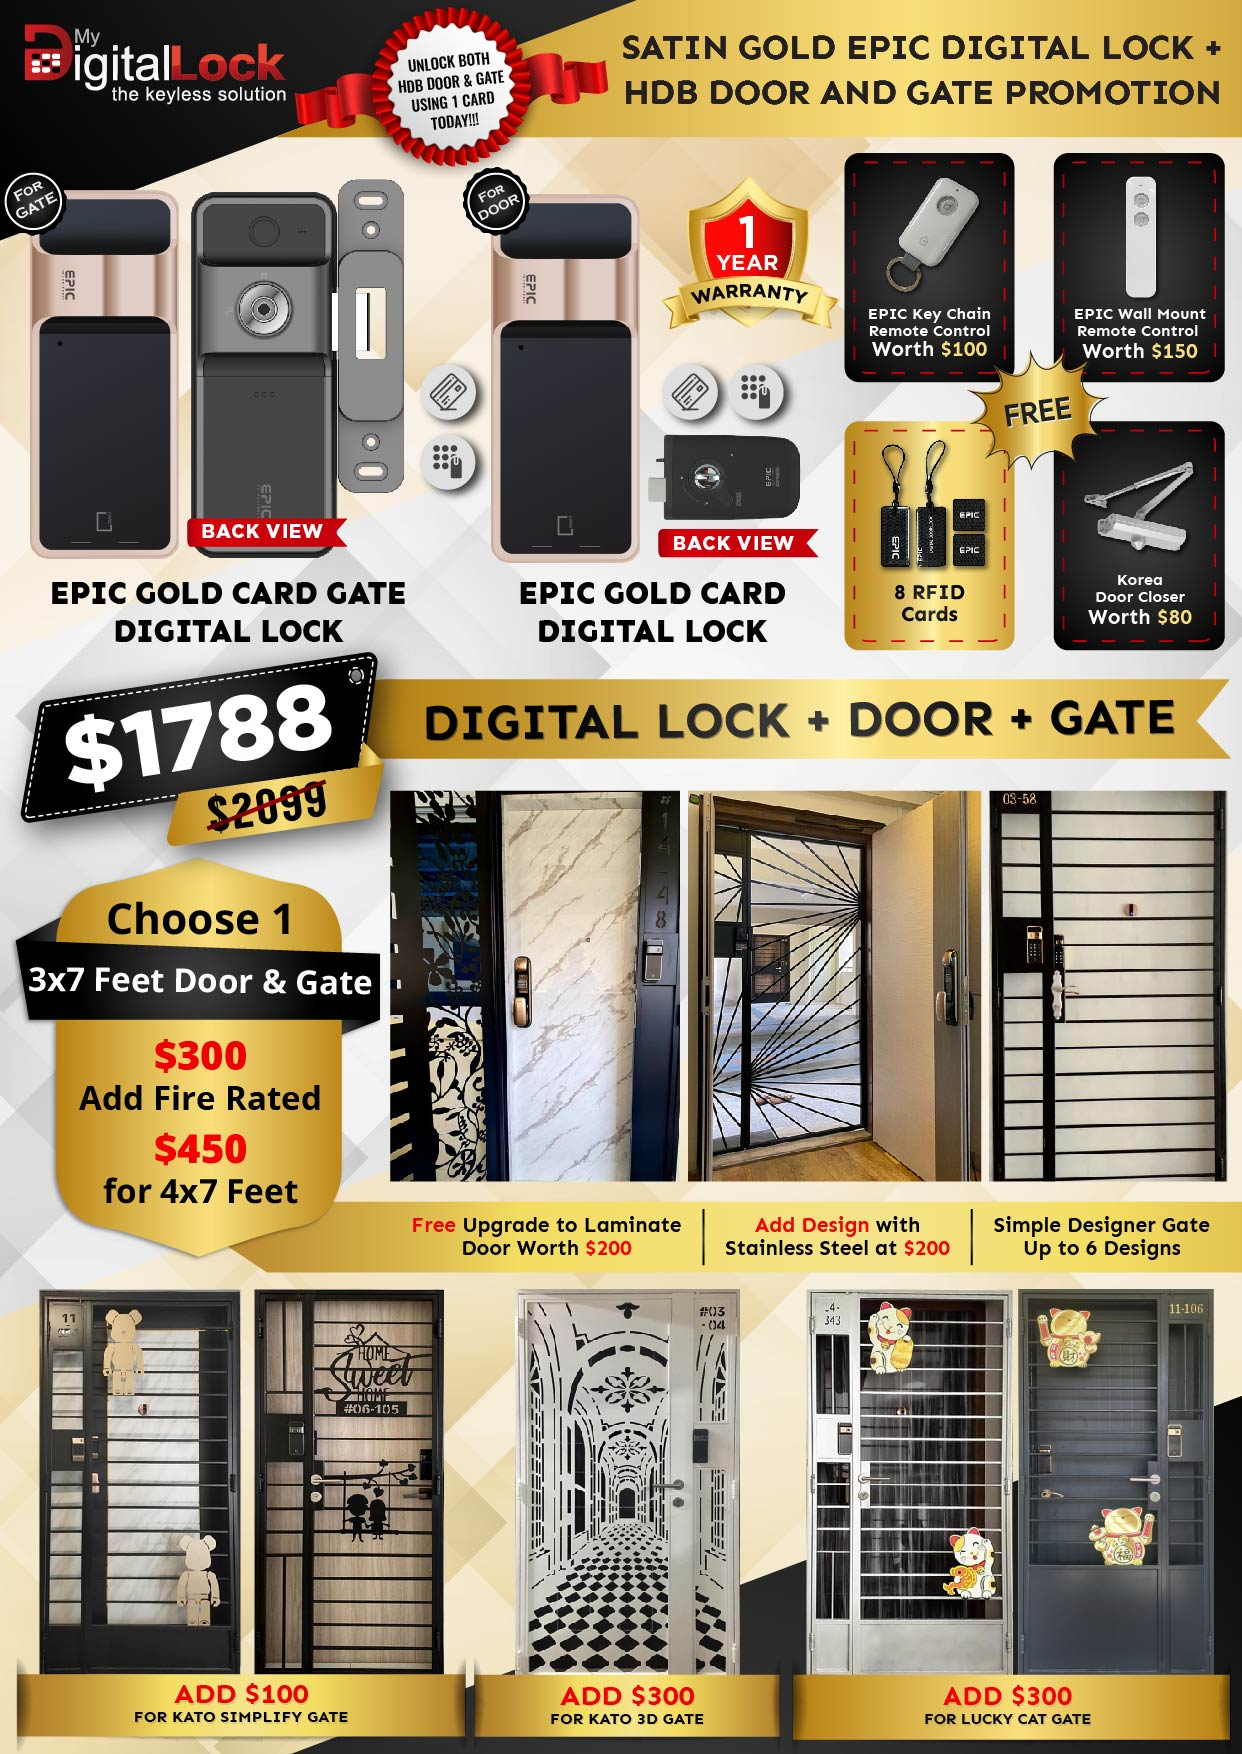 satin gold epic digital lock